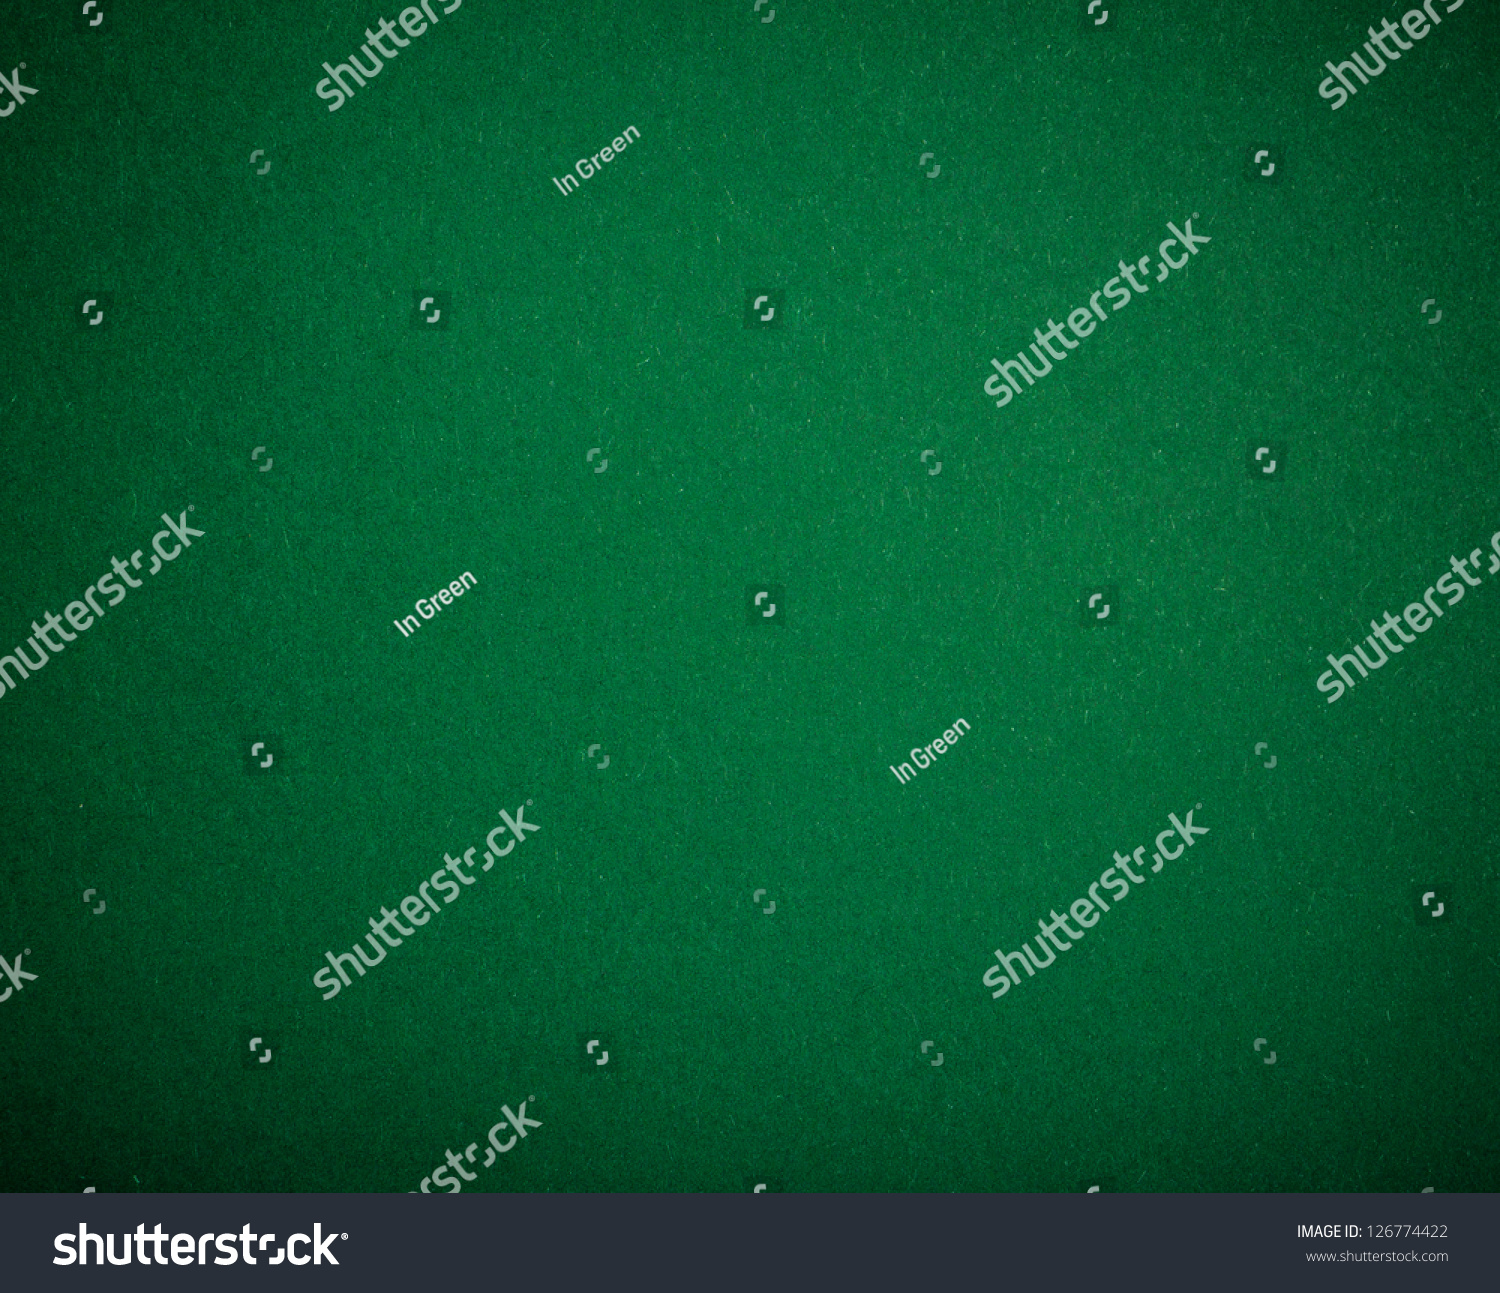 Poker table background hd - Poker Table Felt Background In Green Color